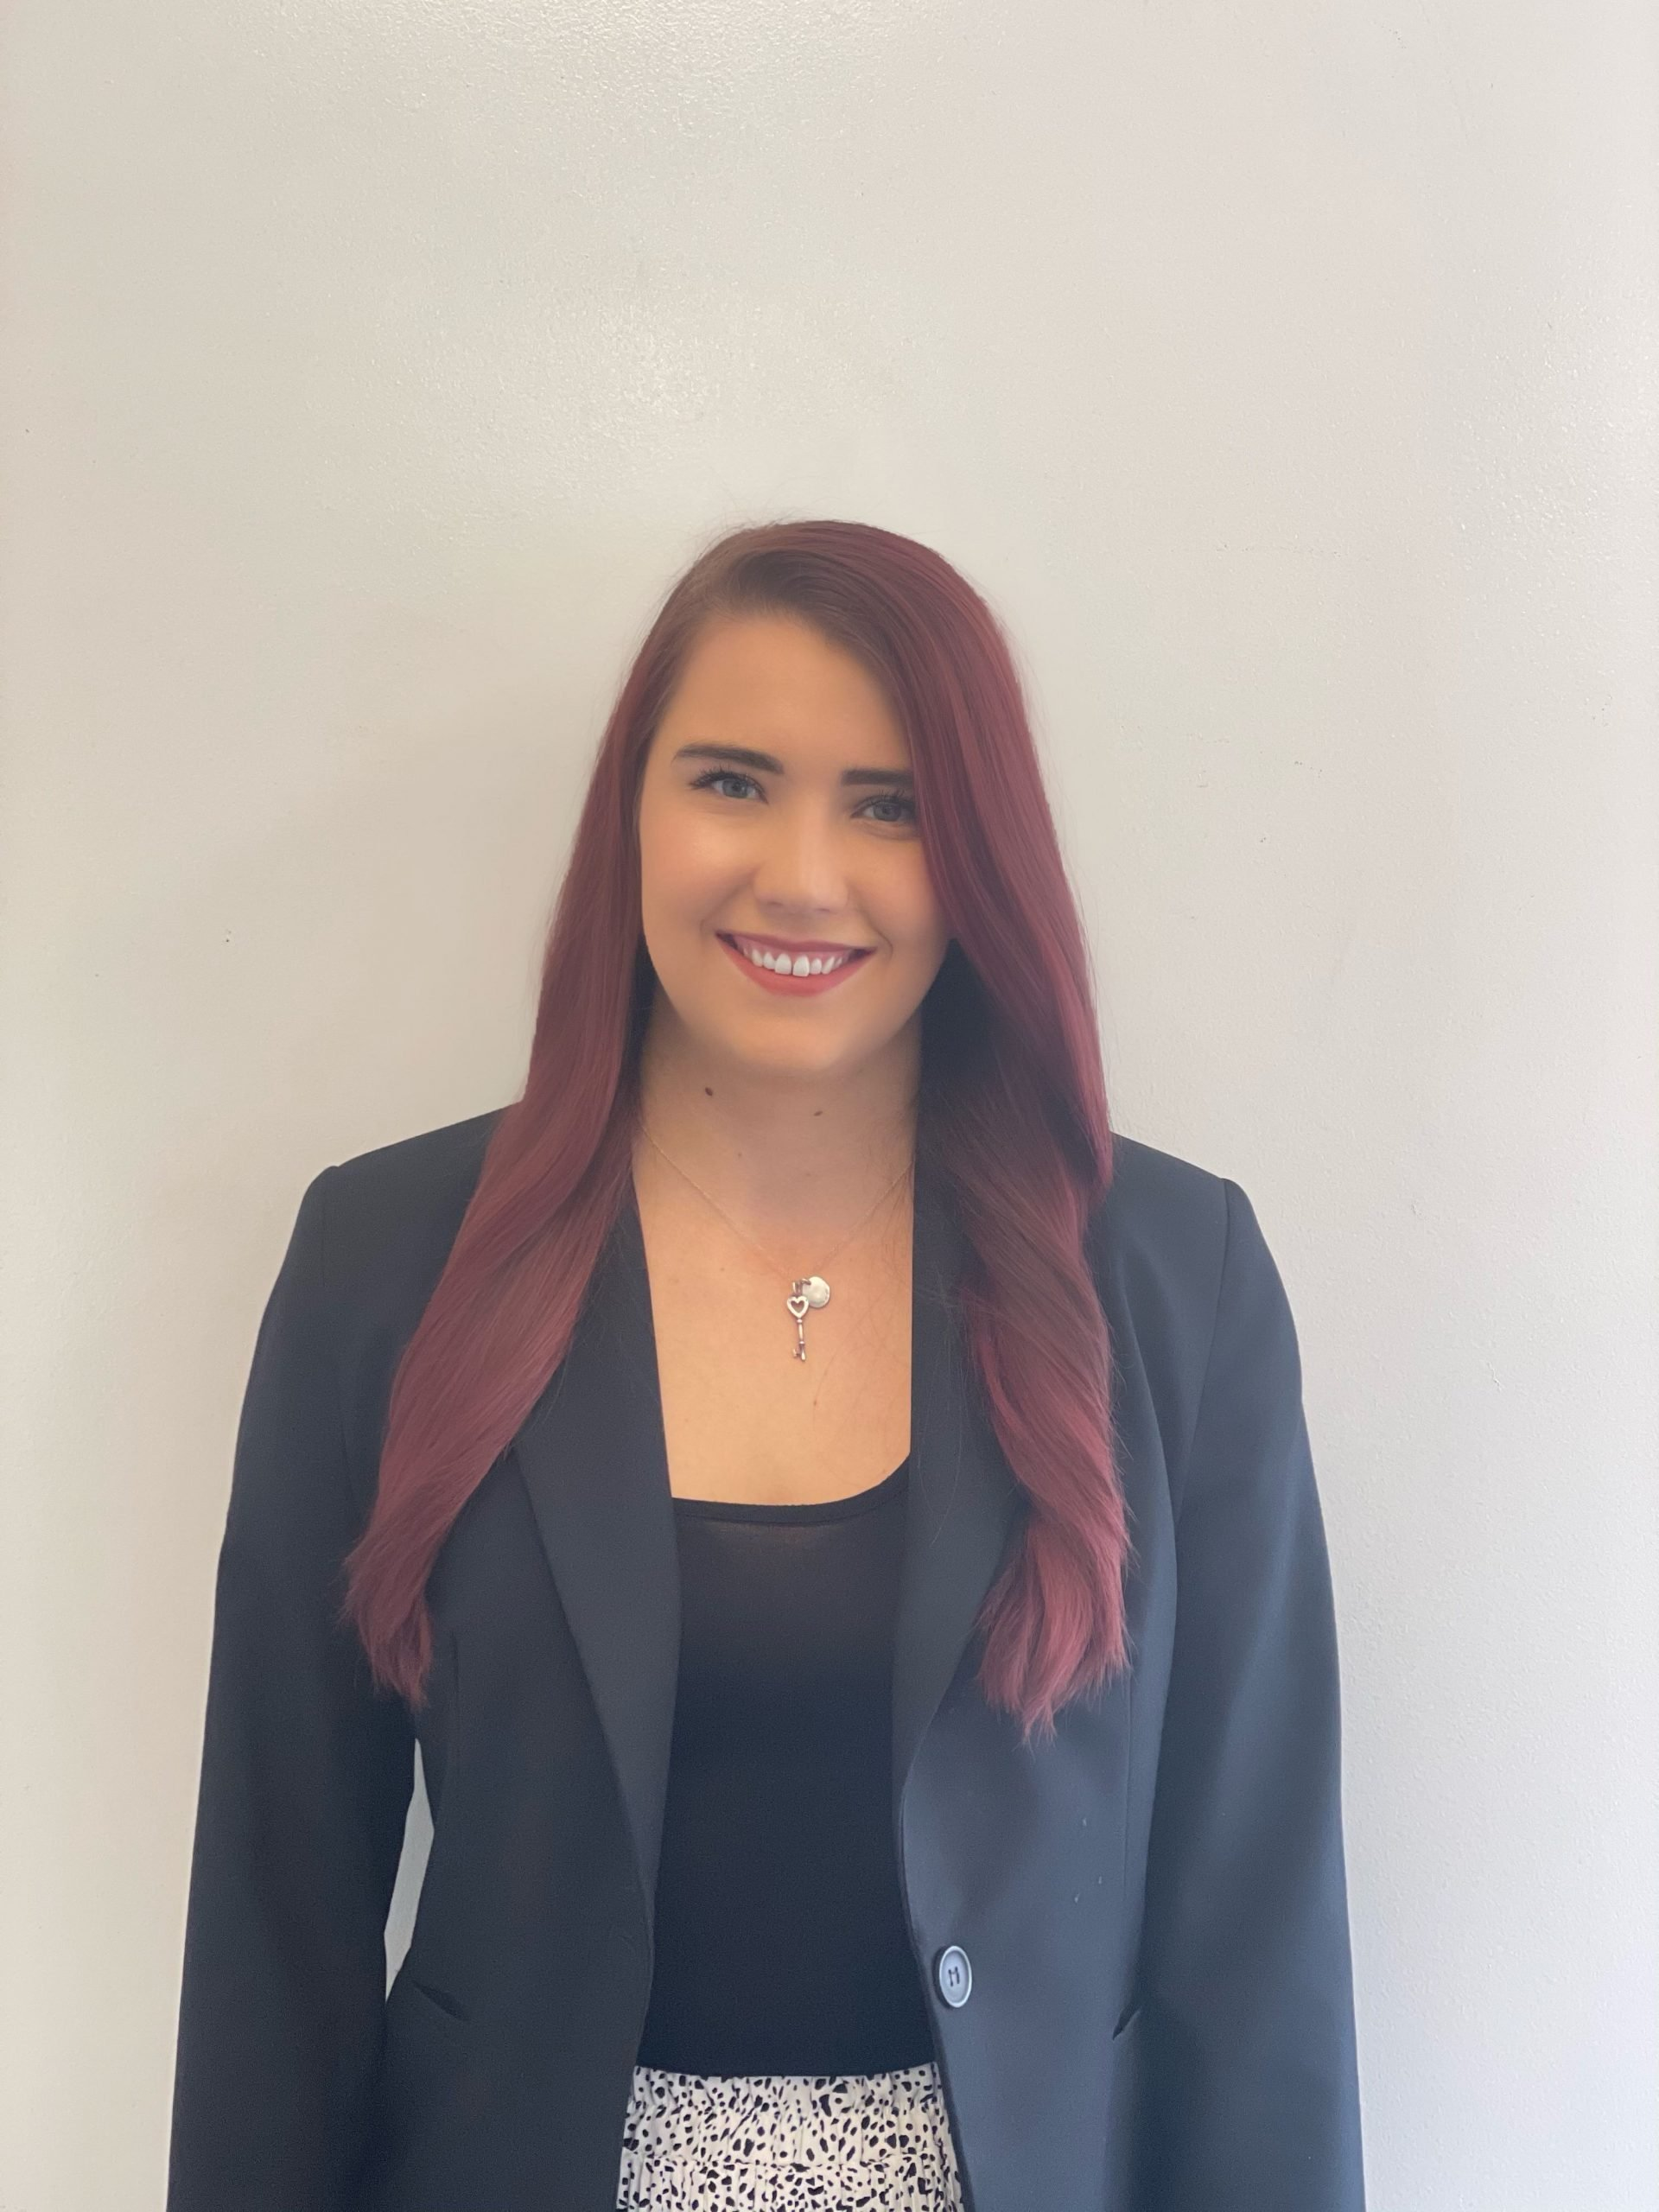 Taylor Comstock - Attorney in Washington, D.C.